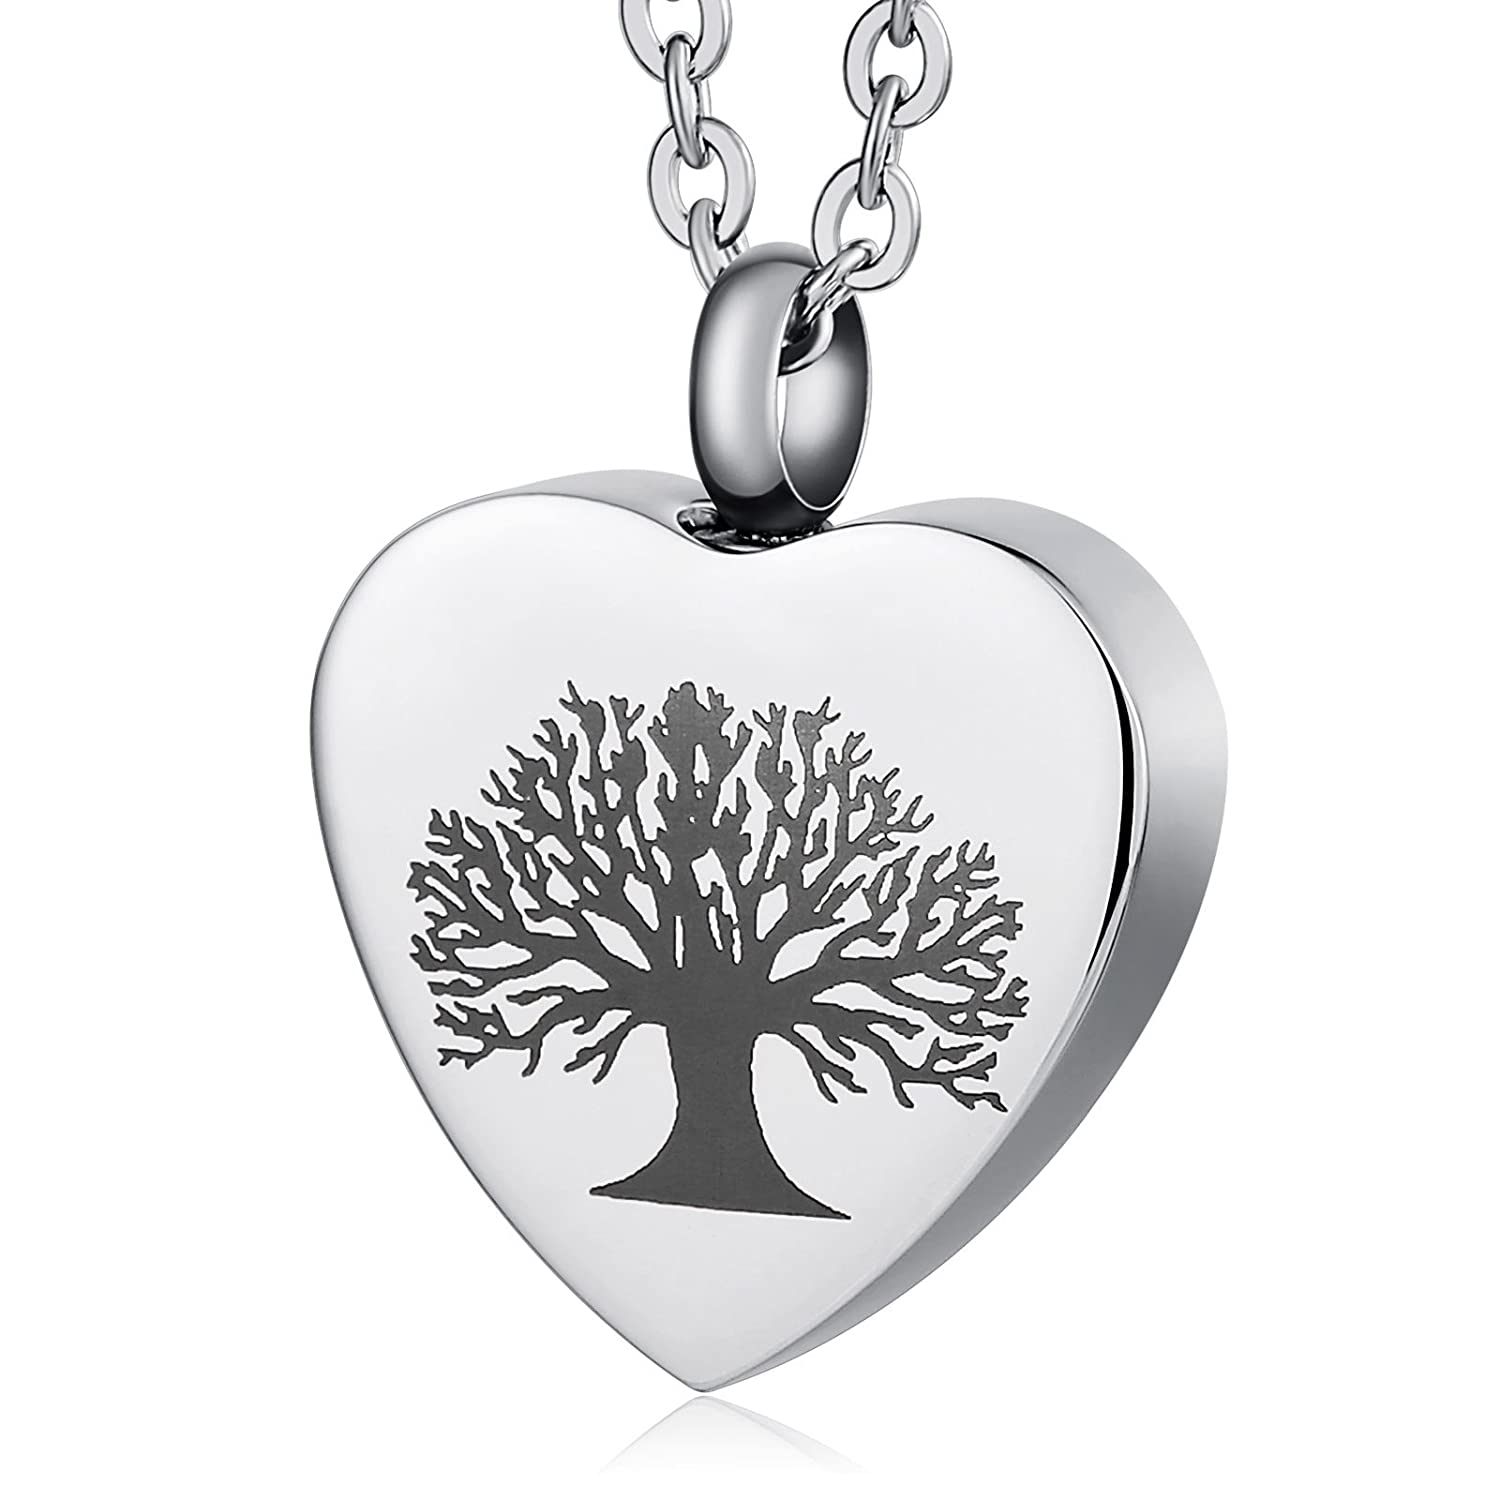 AnazoZ Tree of Life Stainless Steel Heart Shaped Ashes Holder Memorial Cremation Jewelry Urn Pendant Necklace